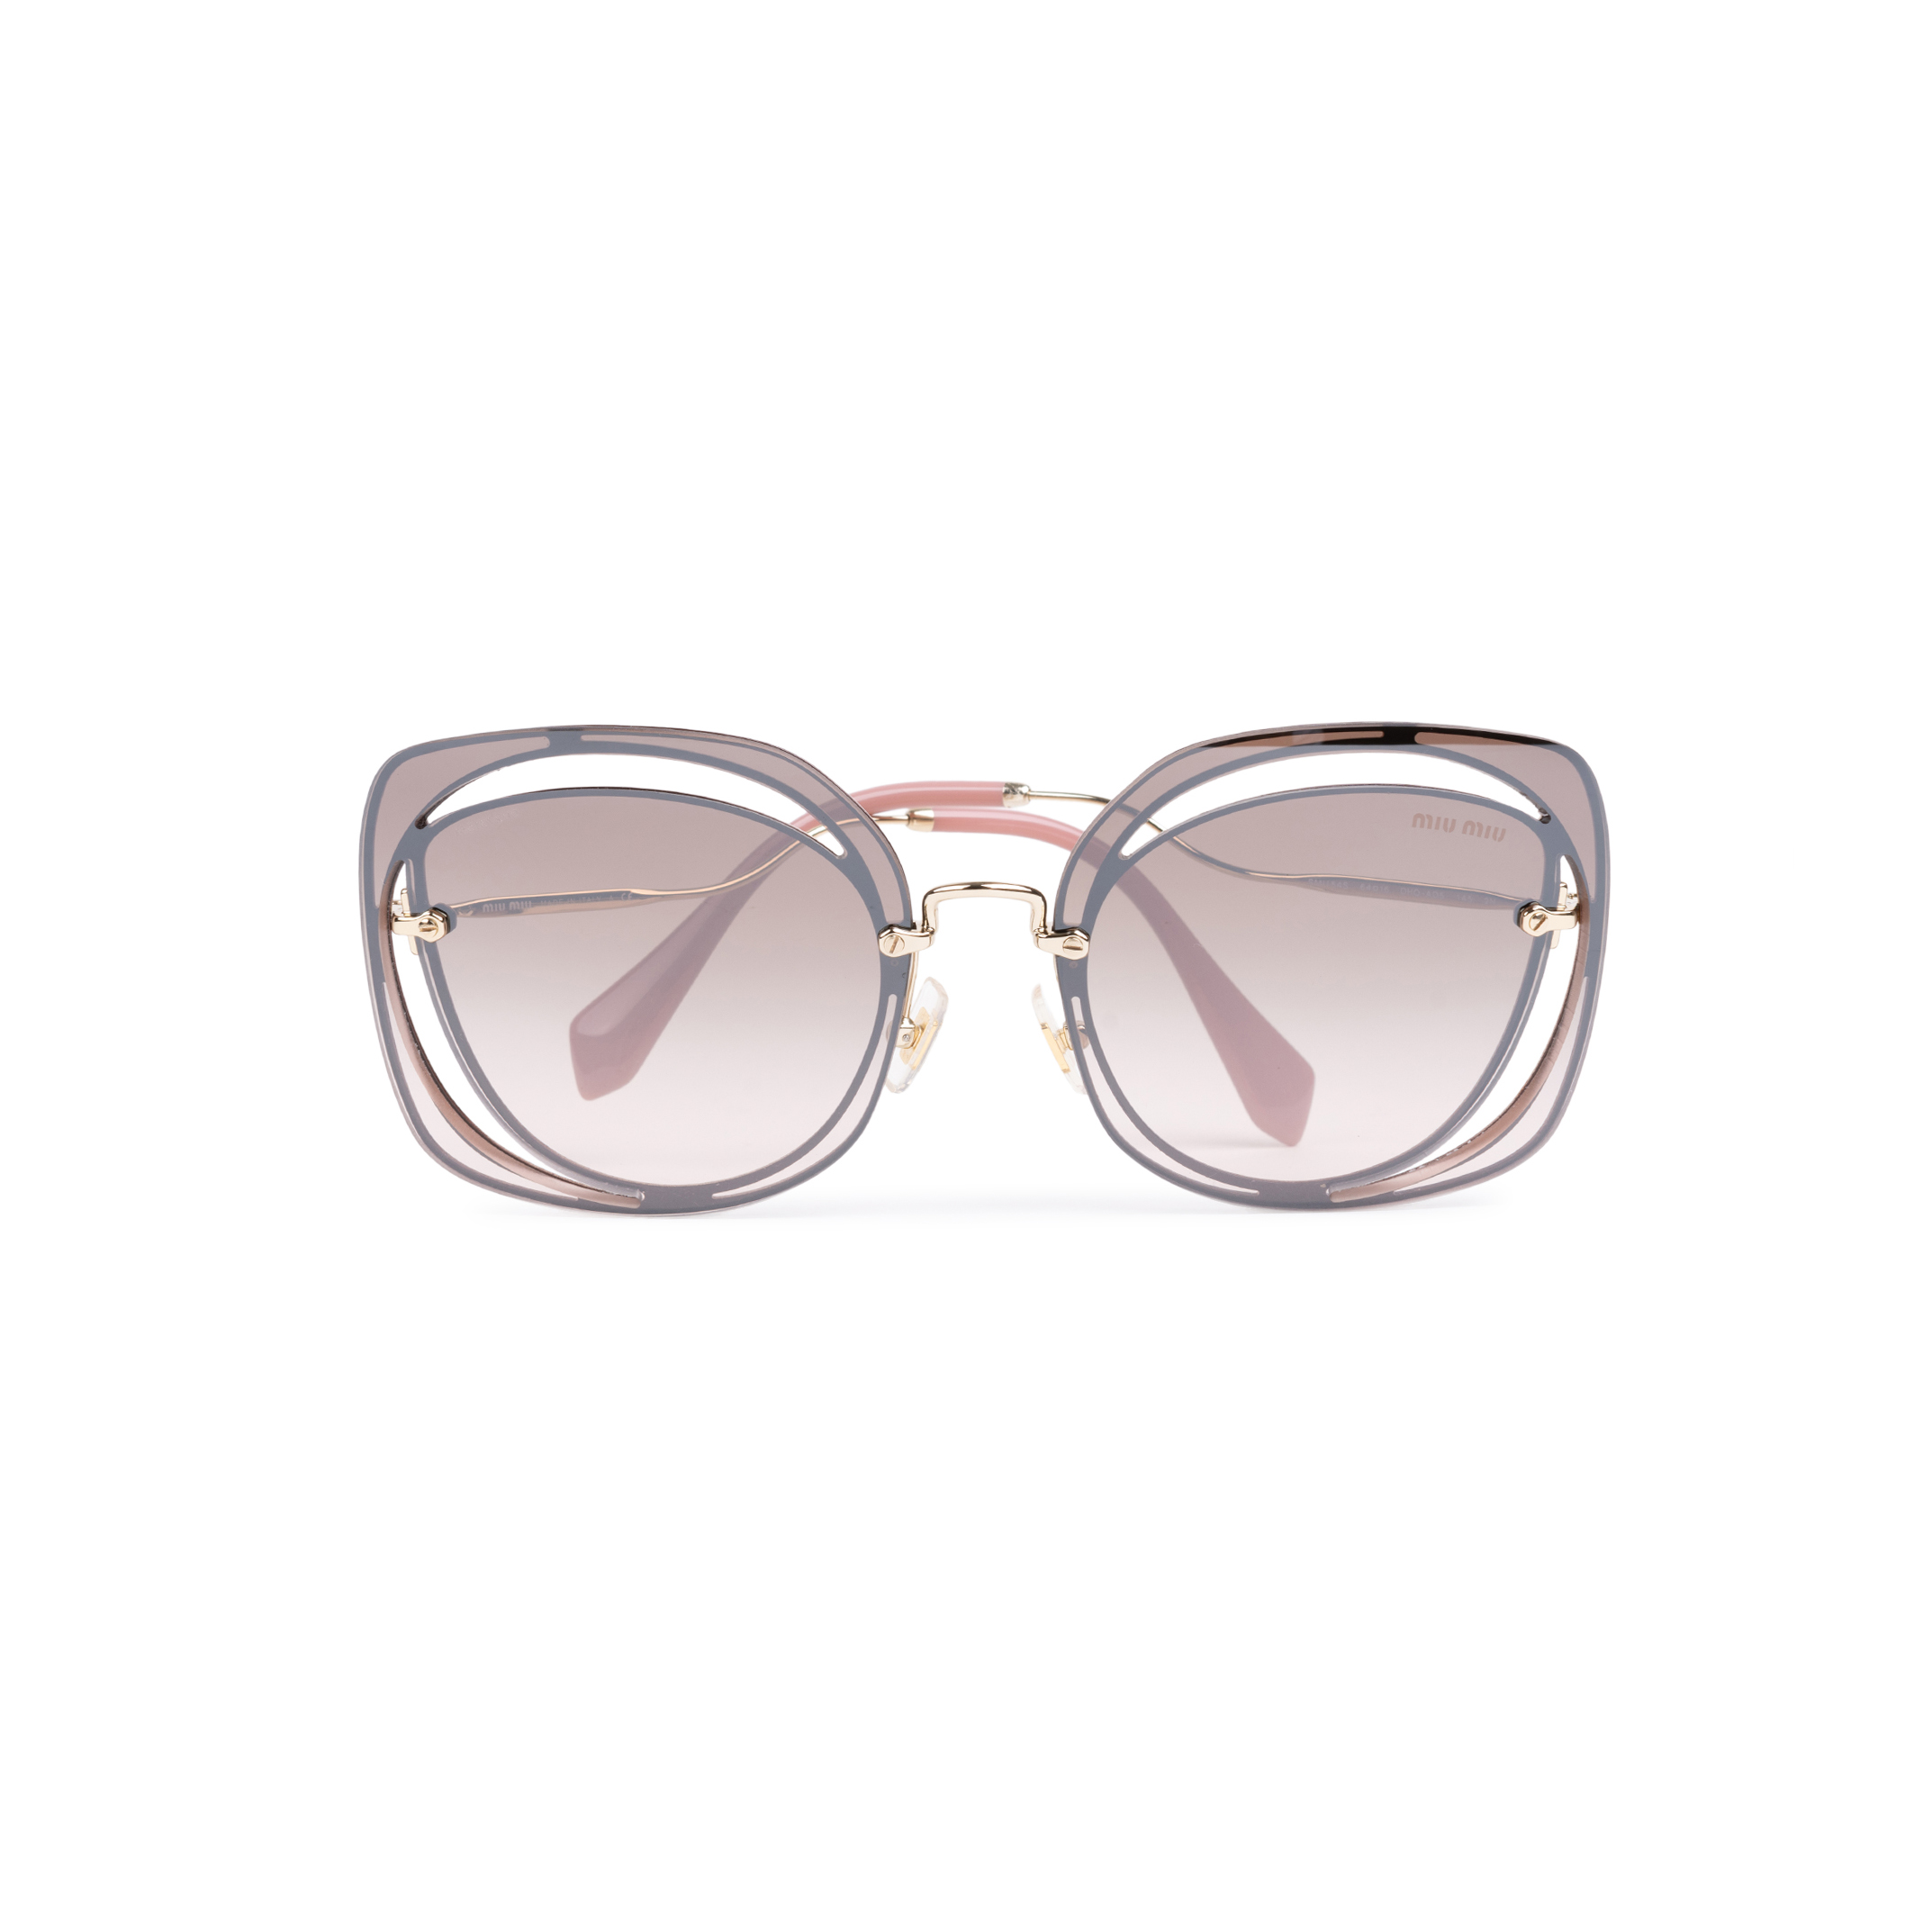 dcbde3250f75 Authentic Second Hand Miu Miu Brown/Pink Cut Out Square Sunglasses  (PSS-200-01580) - THE FIFTH COLLECTION